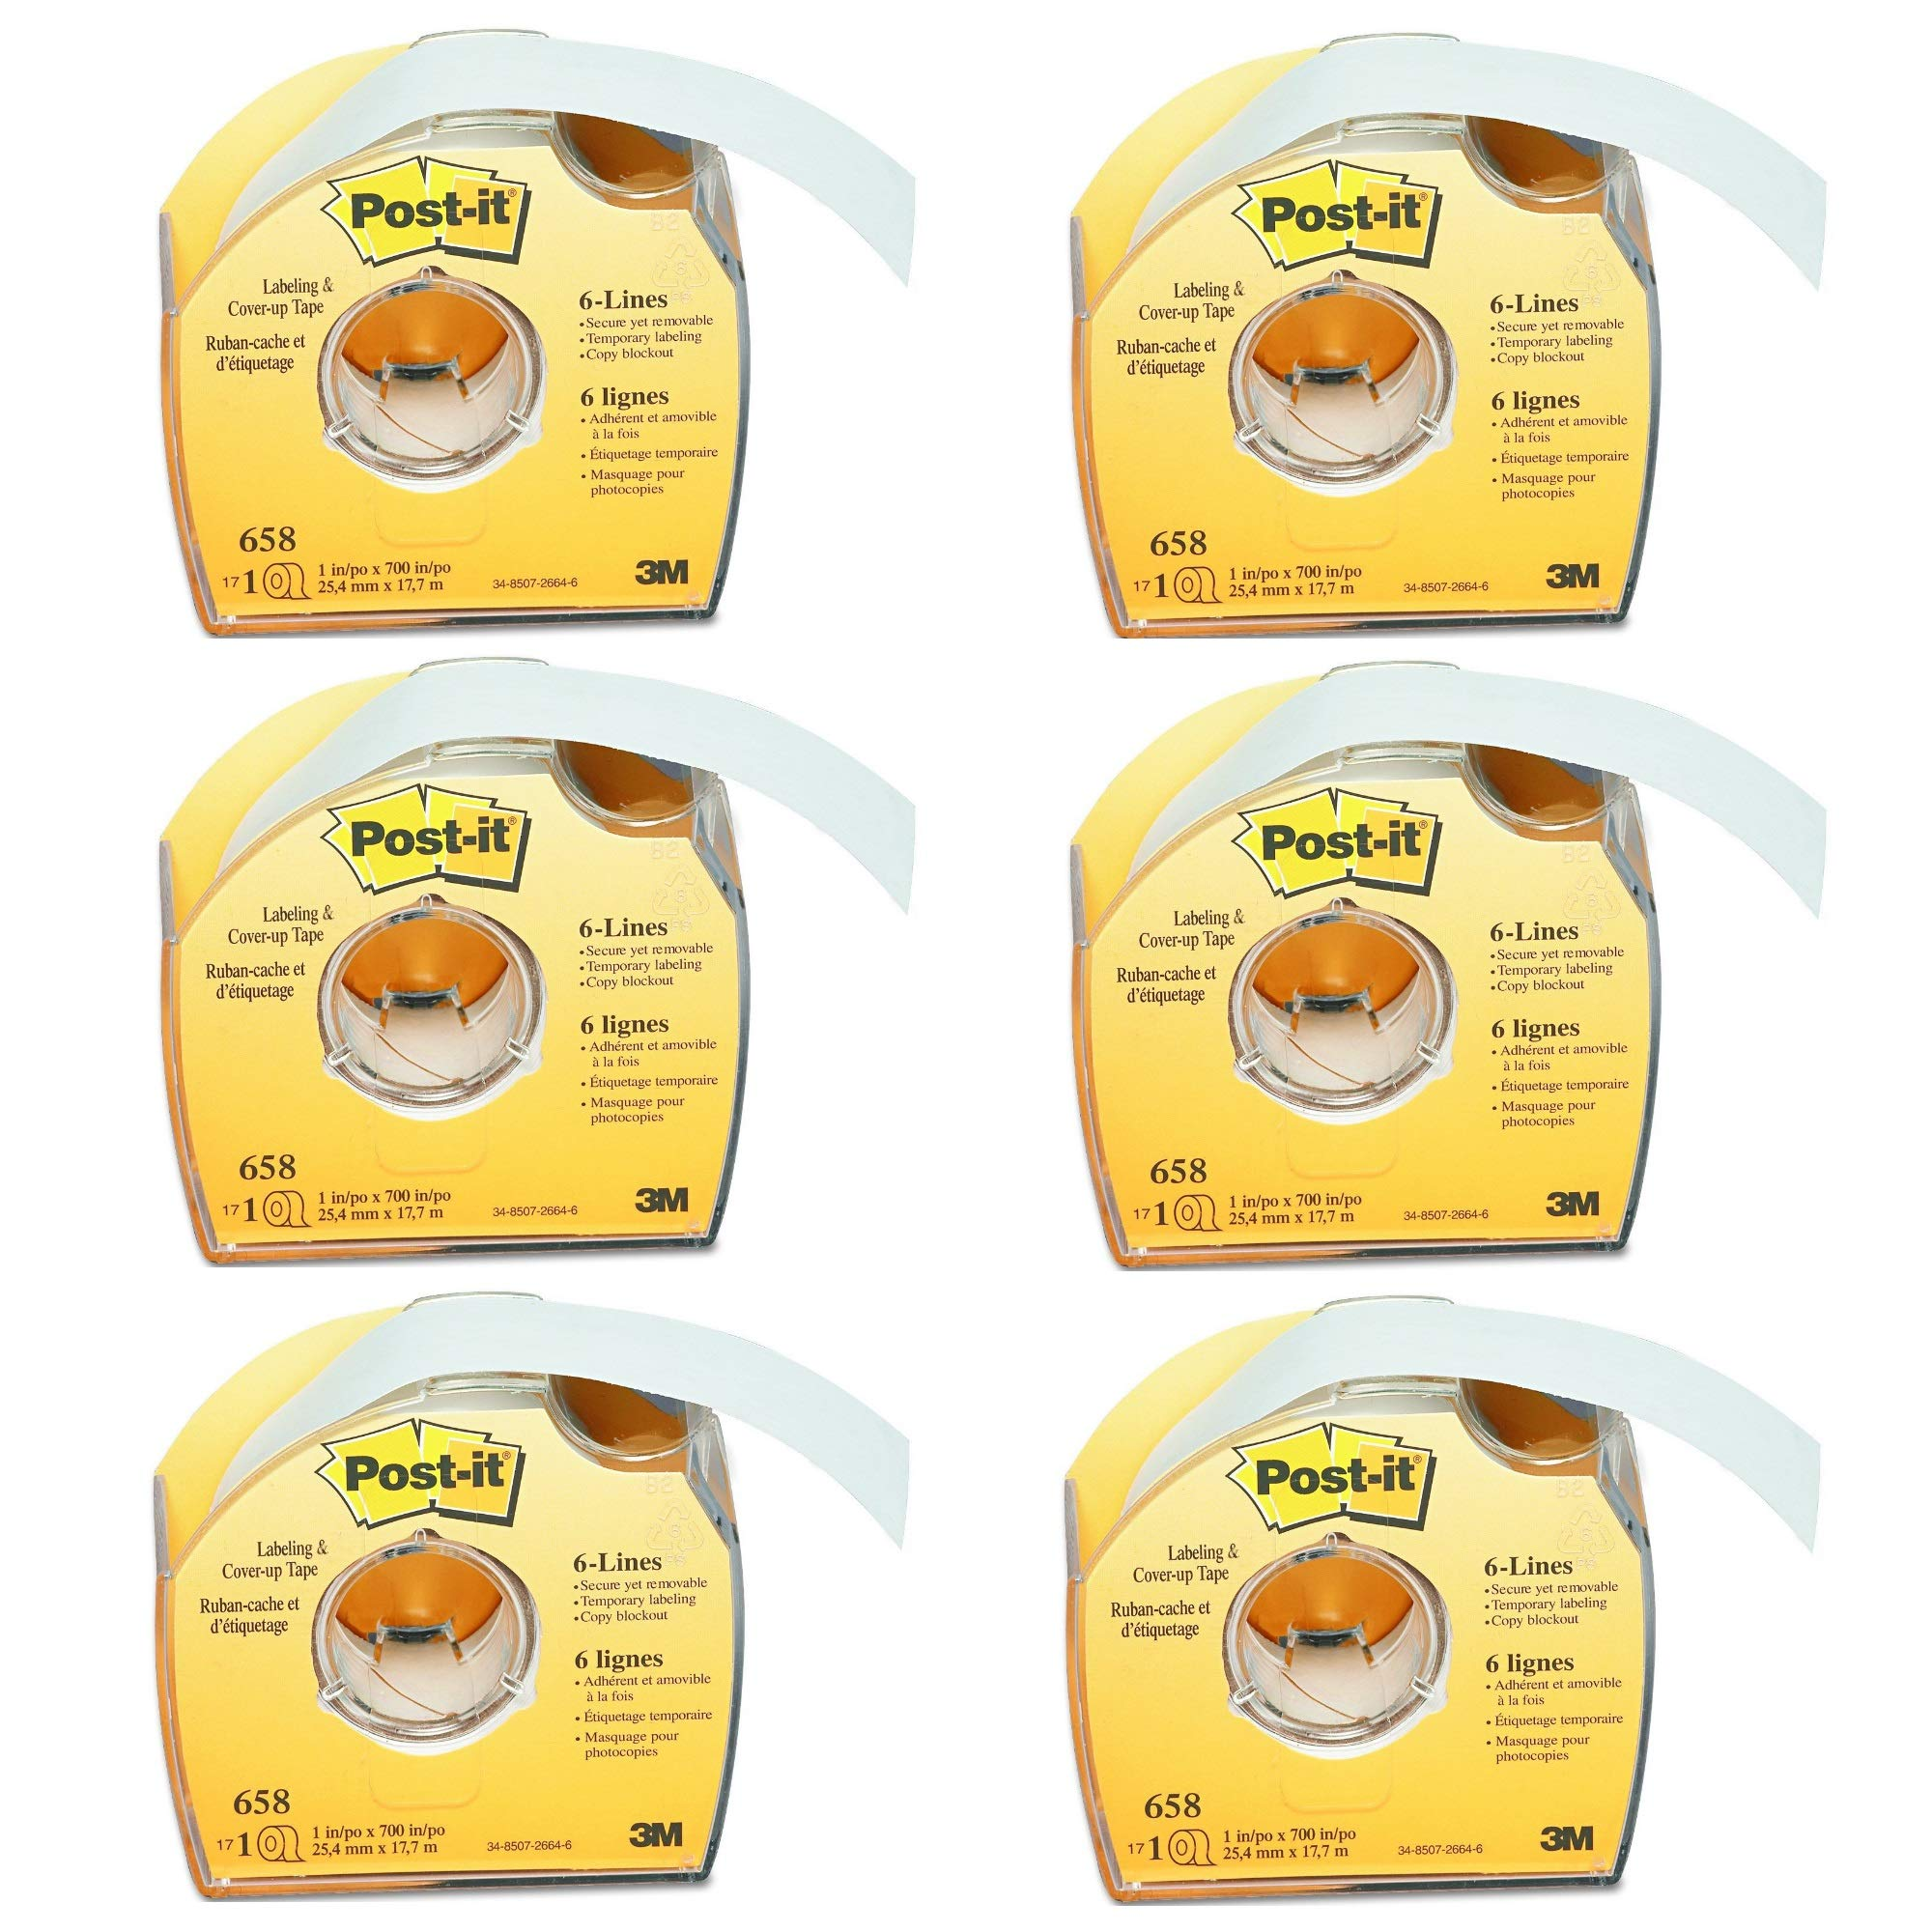 Post-it 658 Labeling & Cover-Up Tape, Non-Refillable, 1'' x 700'' Roll, 6 PACK